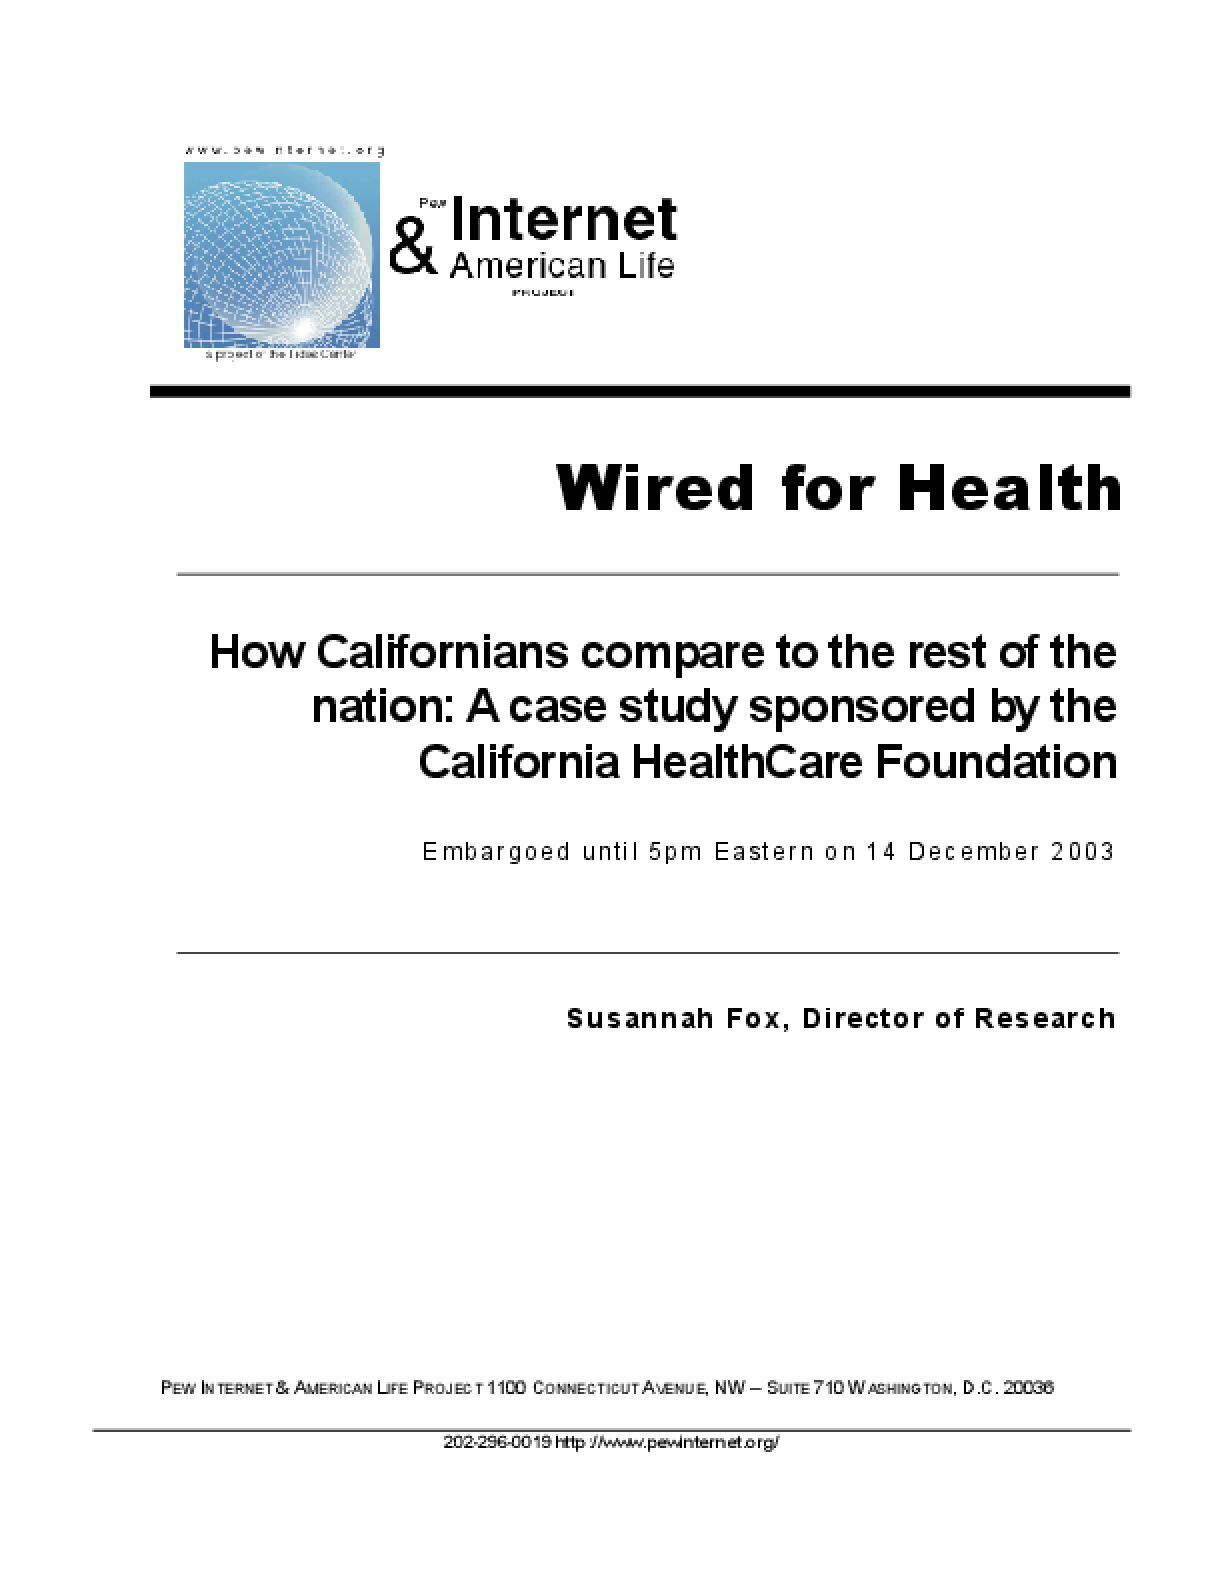 Wired for Health